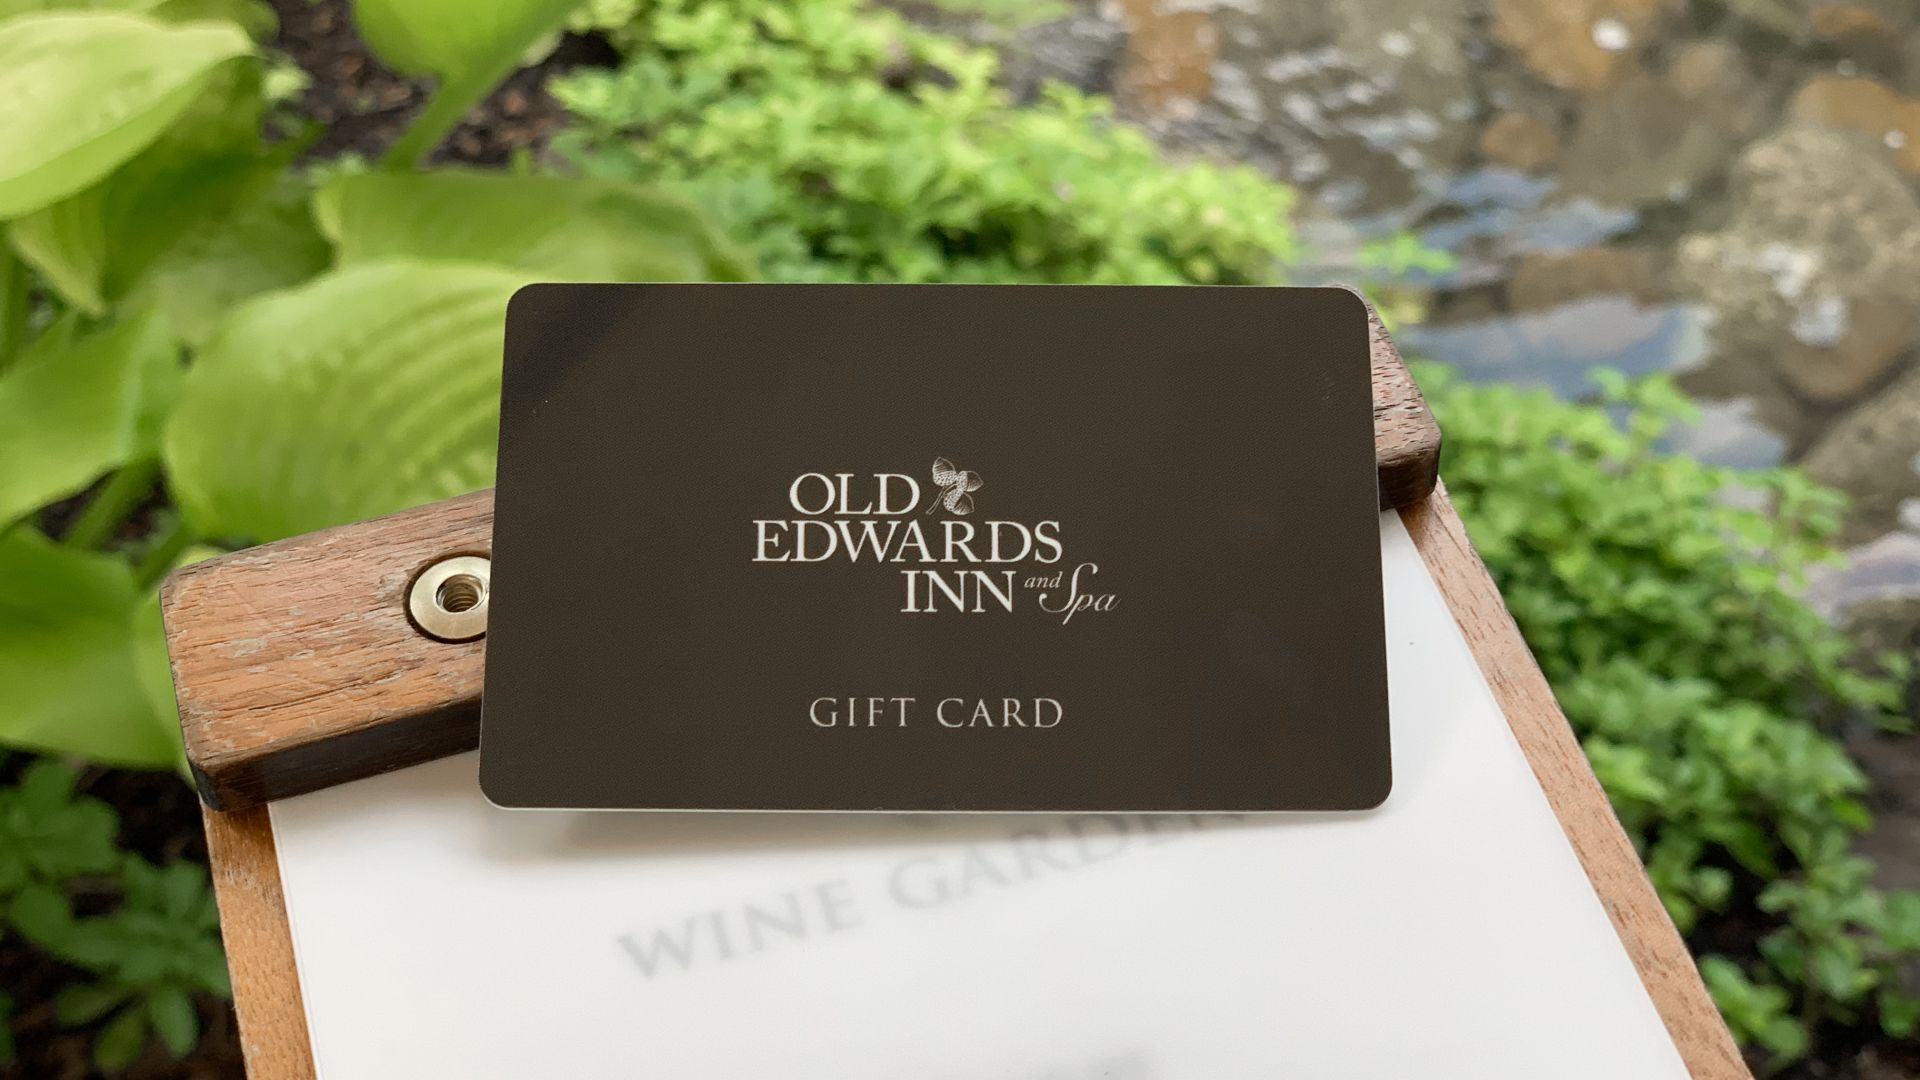 Old Edwards Gift Card in Wine Garden